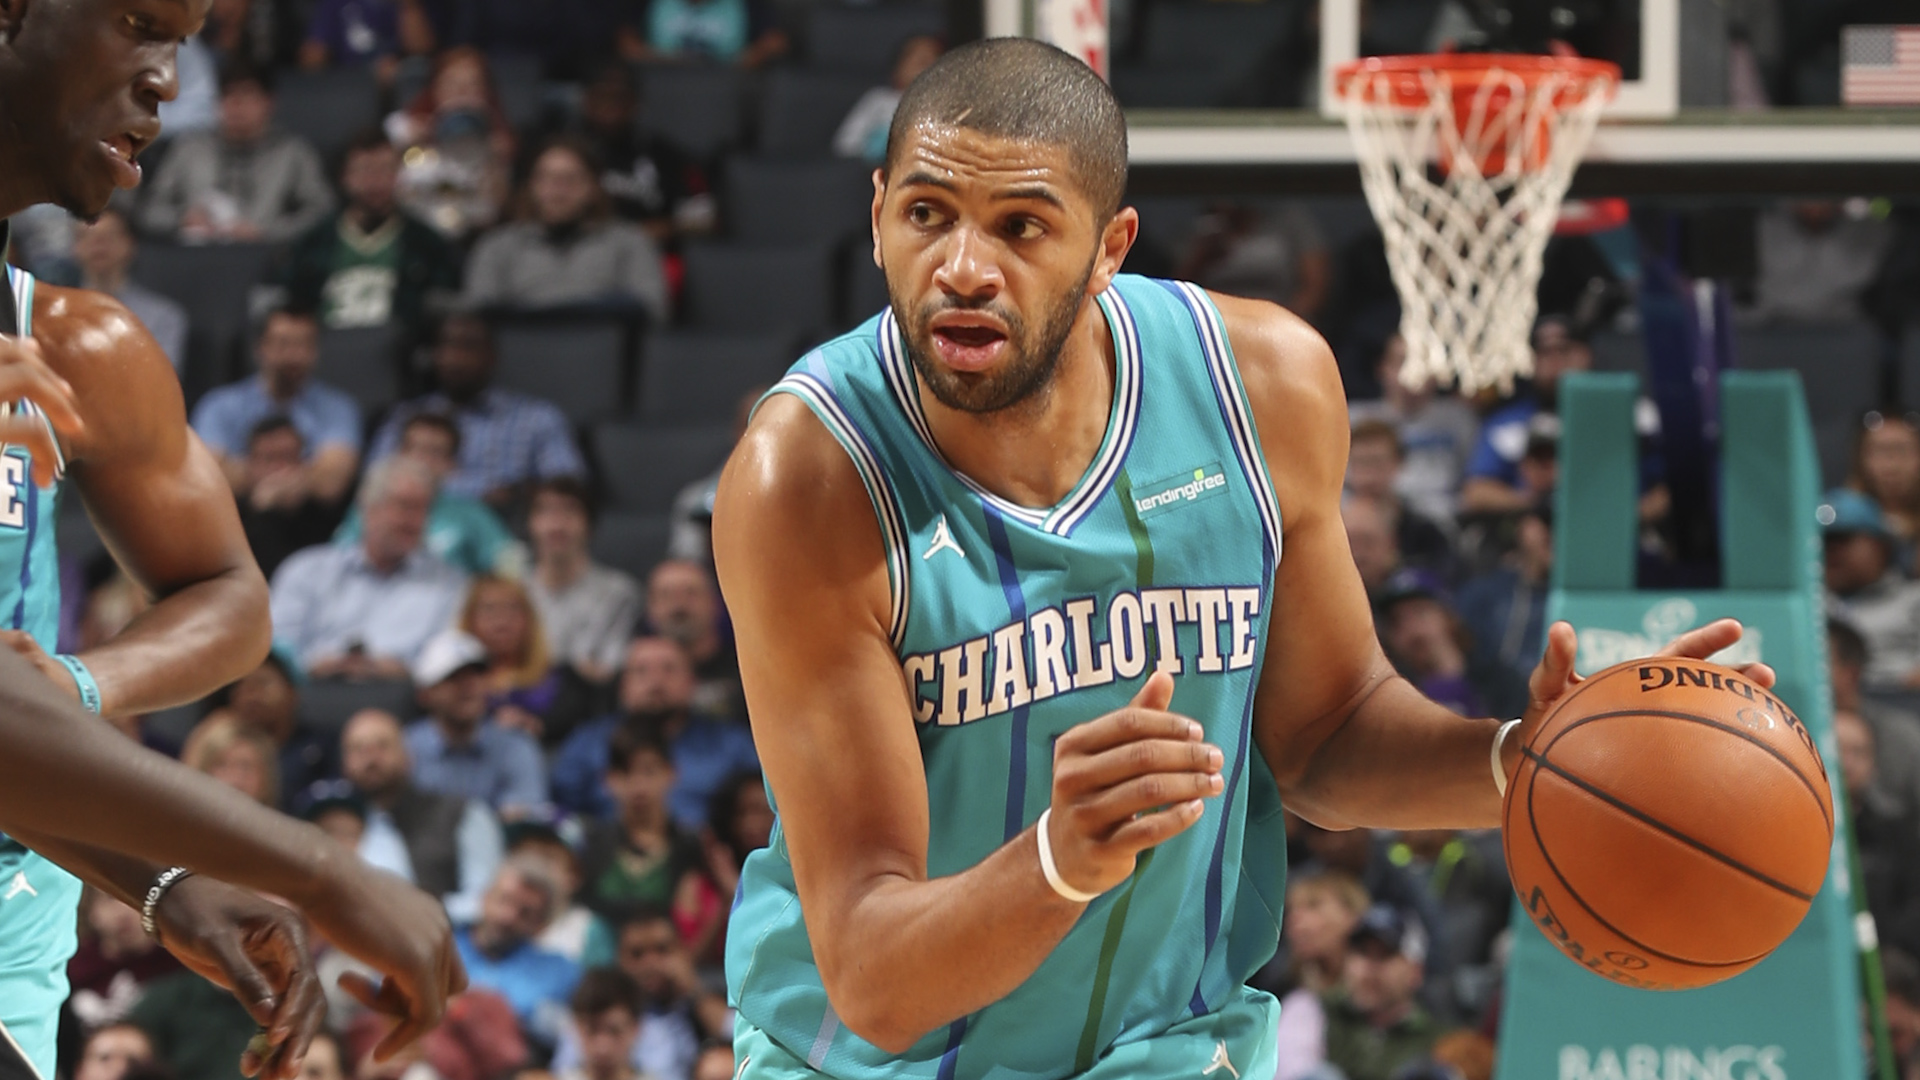 Report: Nicolas Batum to sign with Clippers after release by Hornets